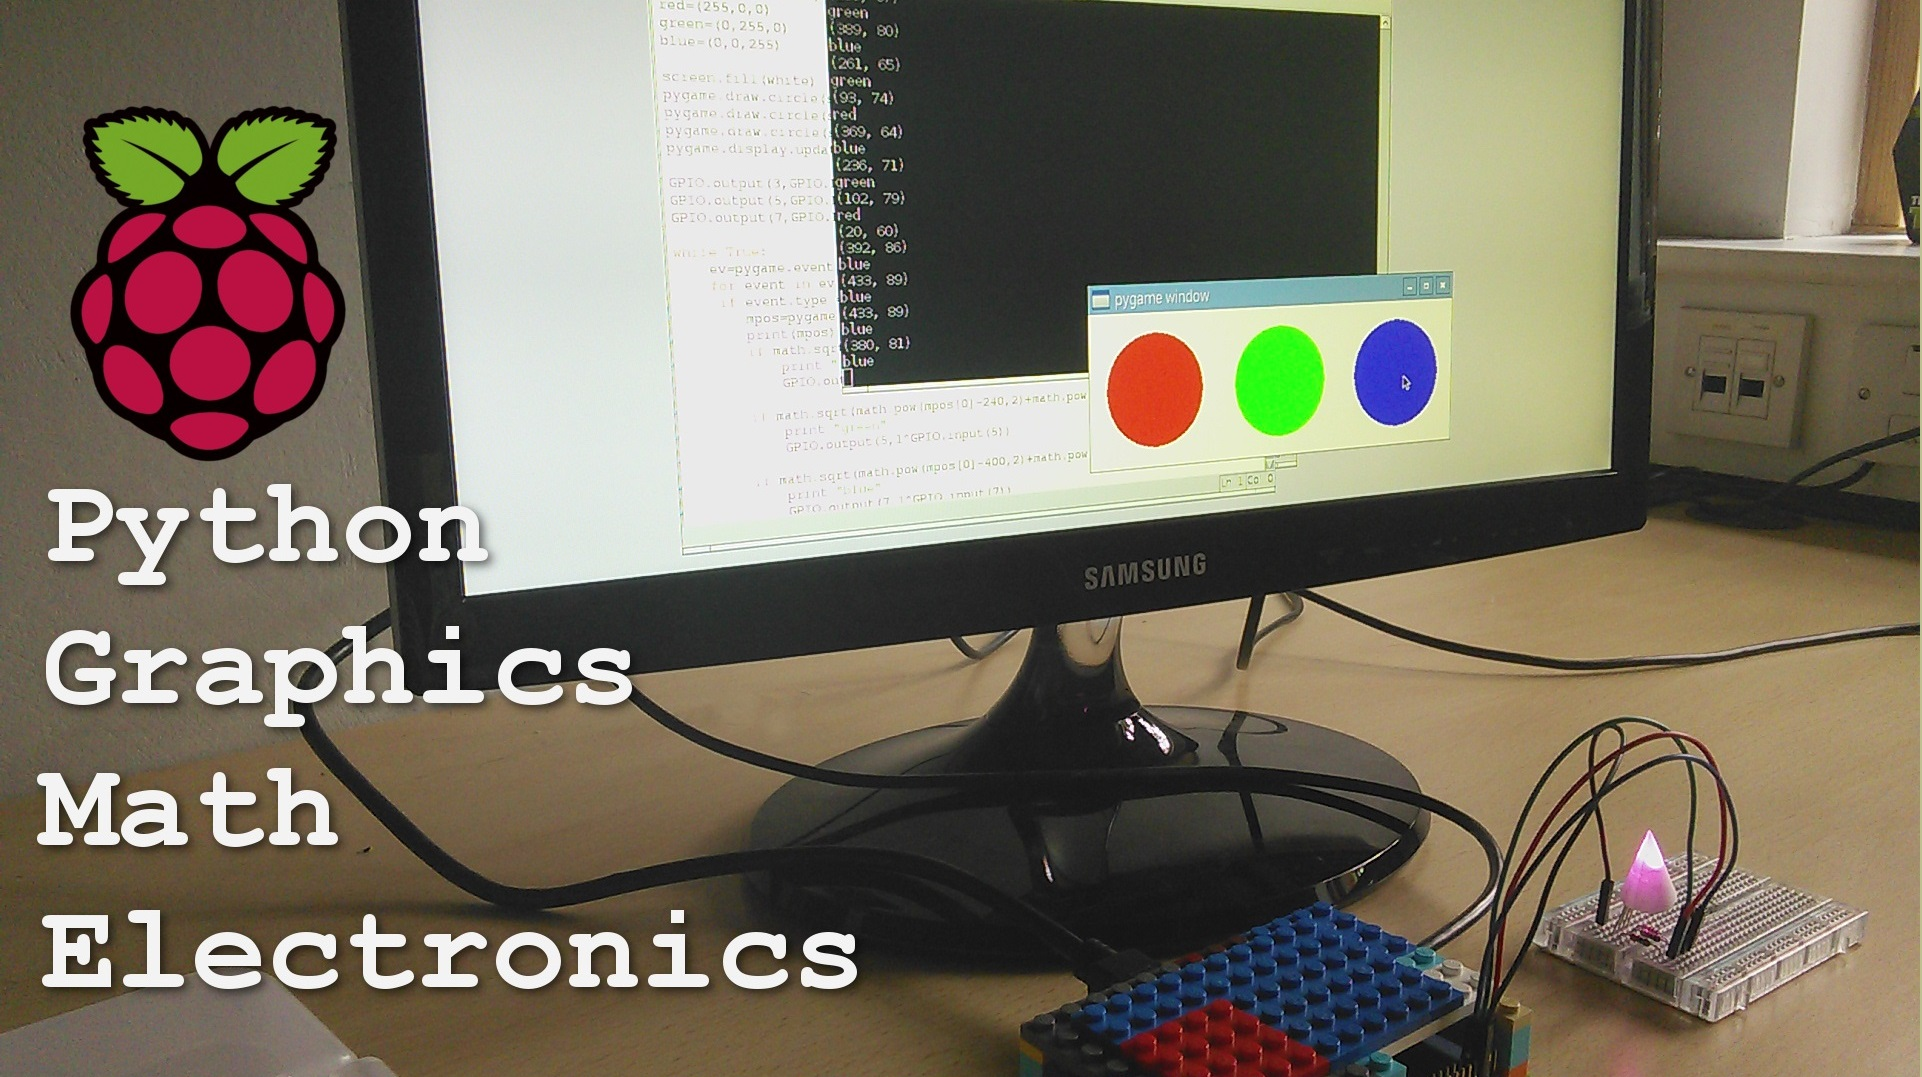 Picture of Raspberry Pi - GPIOs, Graphical Interface, Pyhton, Math, and Electronics.